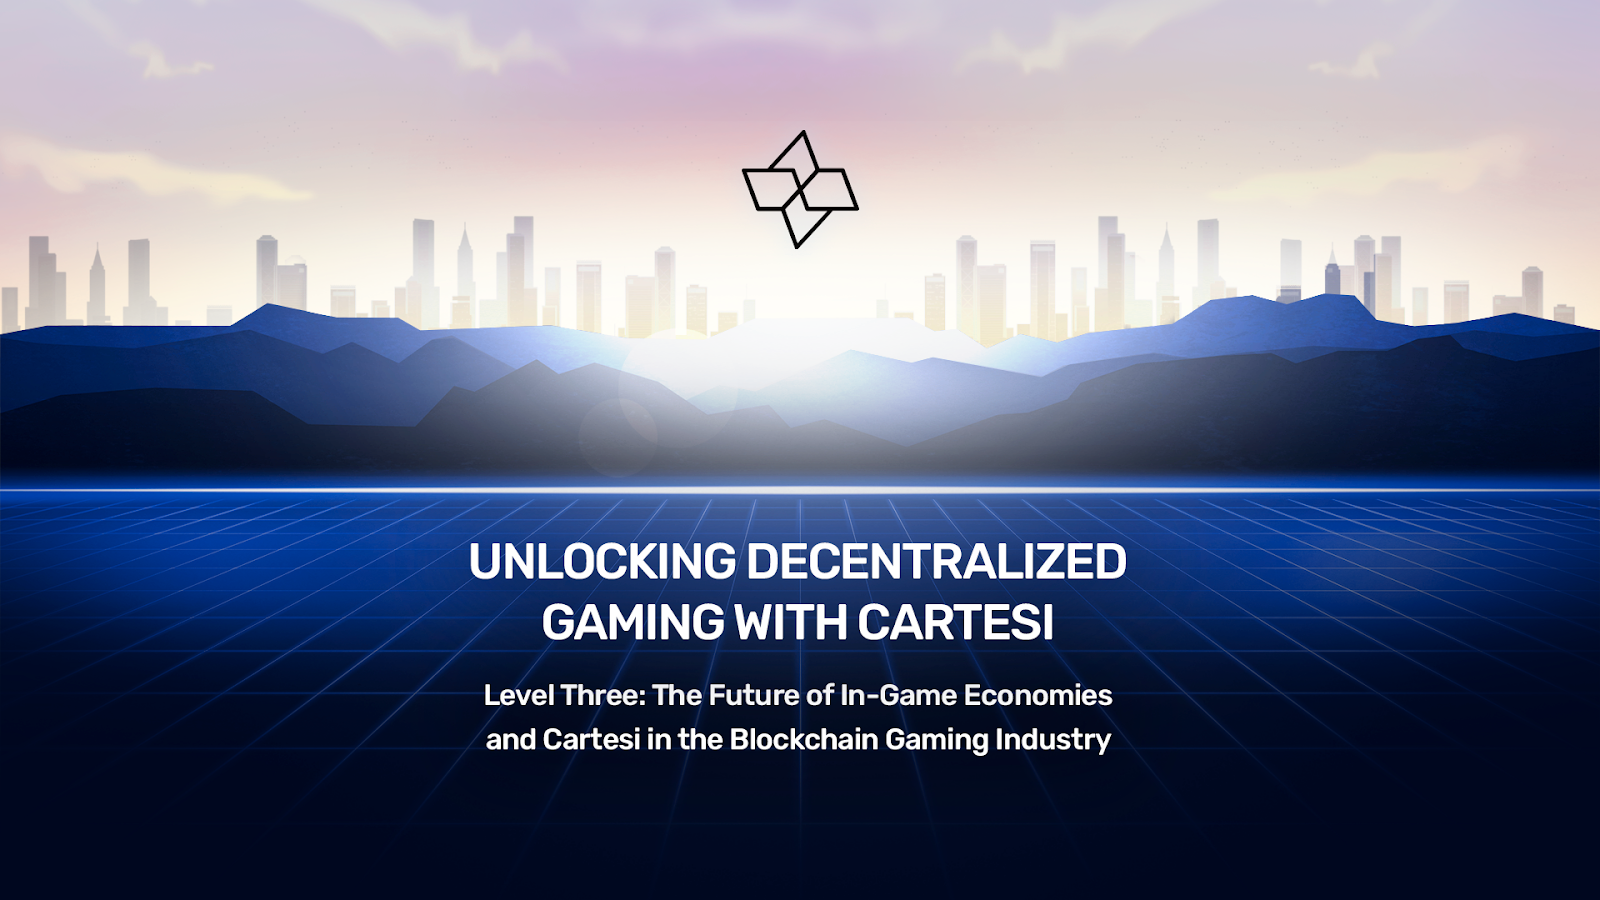 1*F1dvvOSKSlemAzHkzpaeUQ Mini-Series: Unlocking the Next Level of Decentralized Gaming with Cartesi